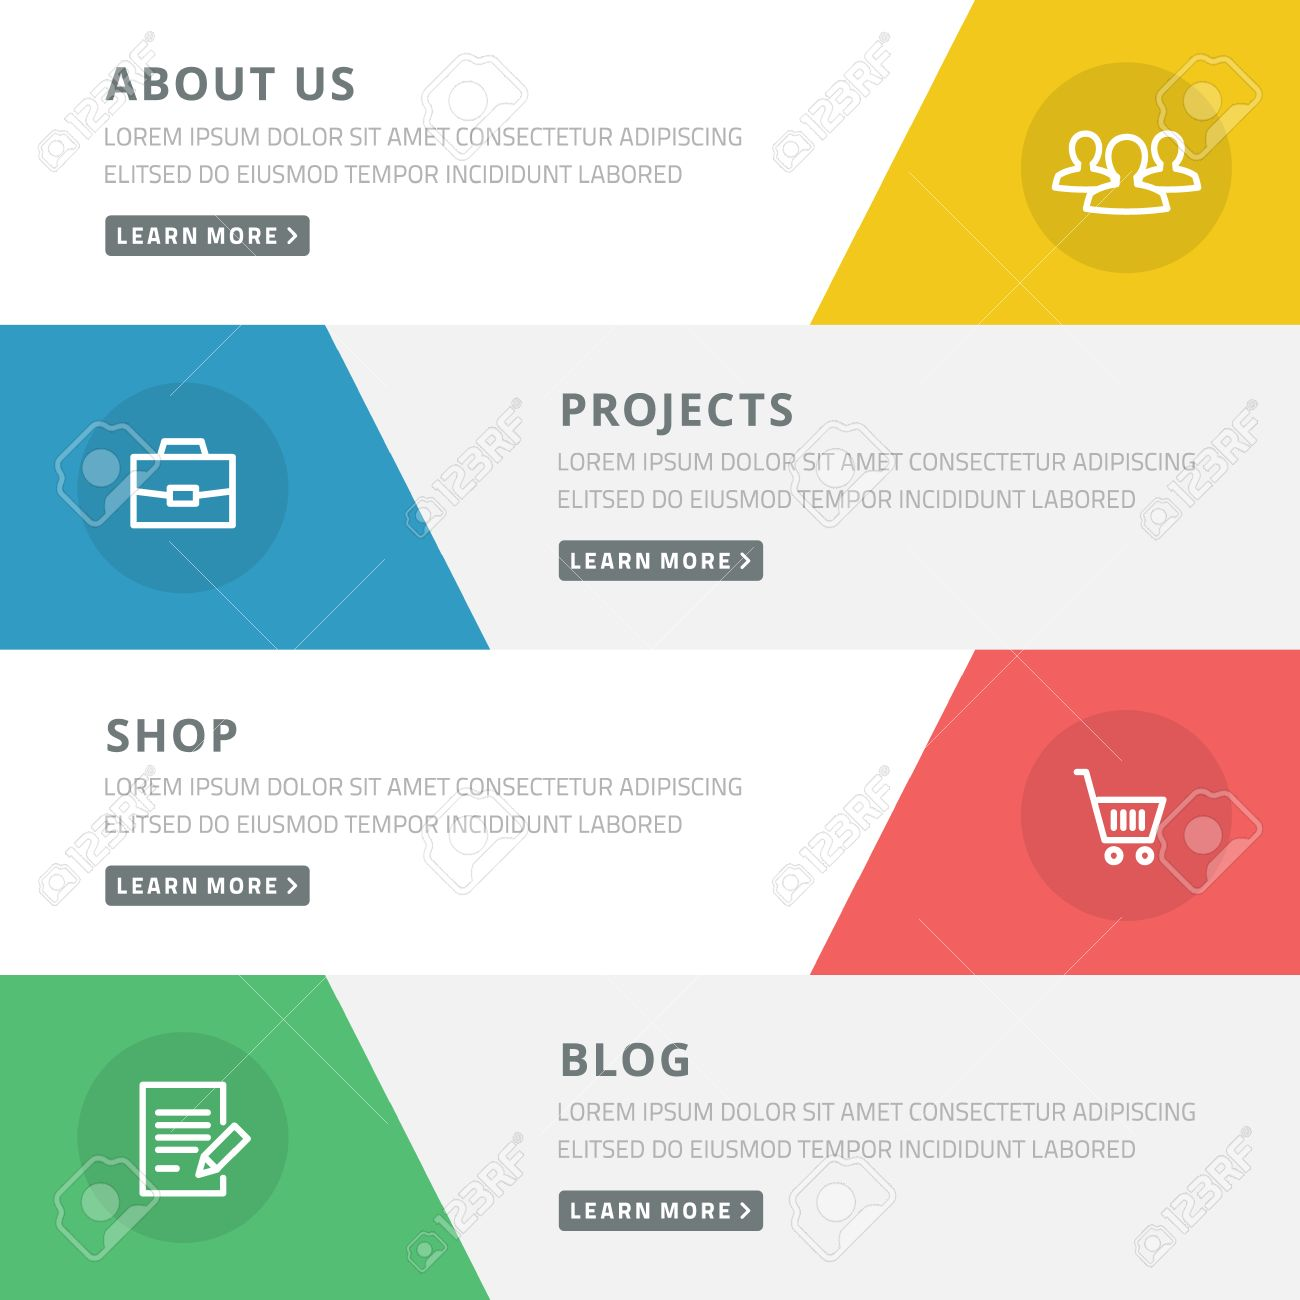 Flat Design Concept For Website Template About Us Projects - About us template for website